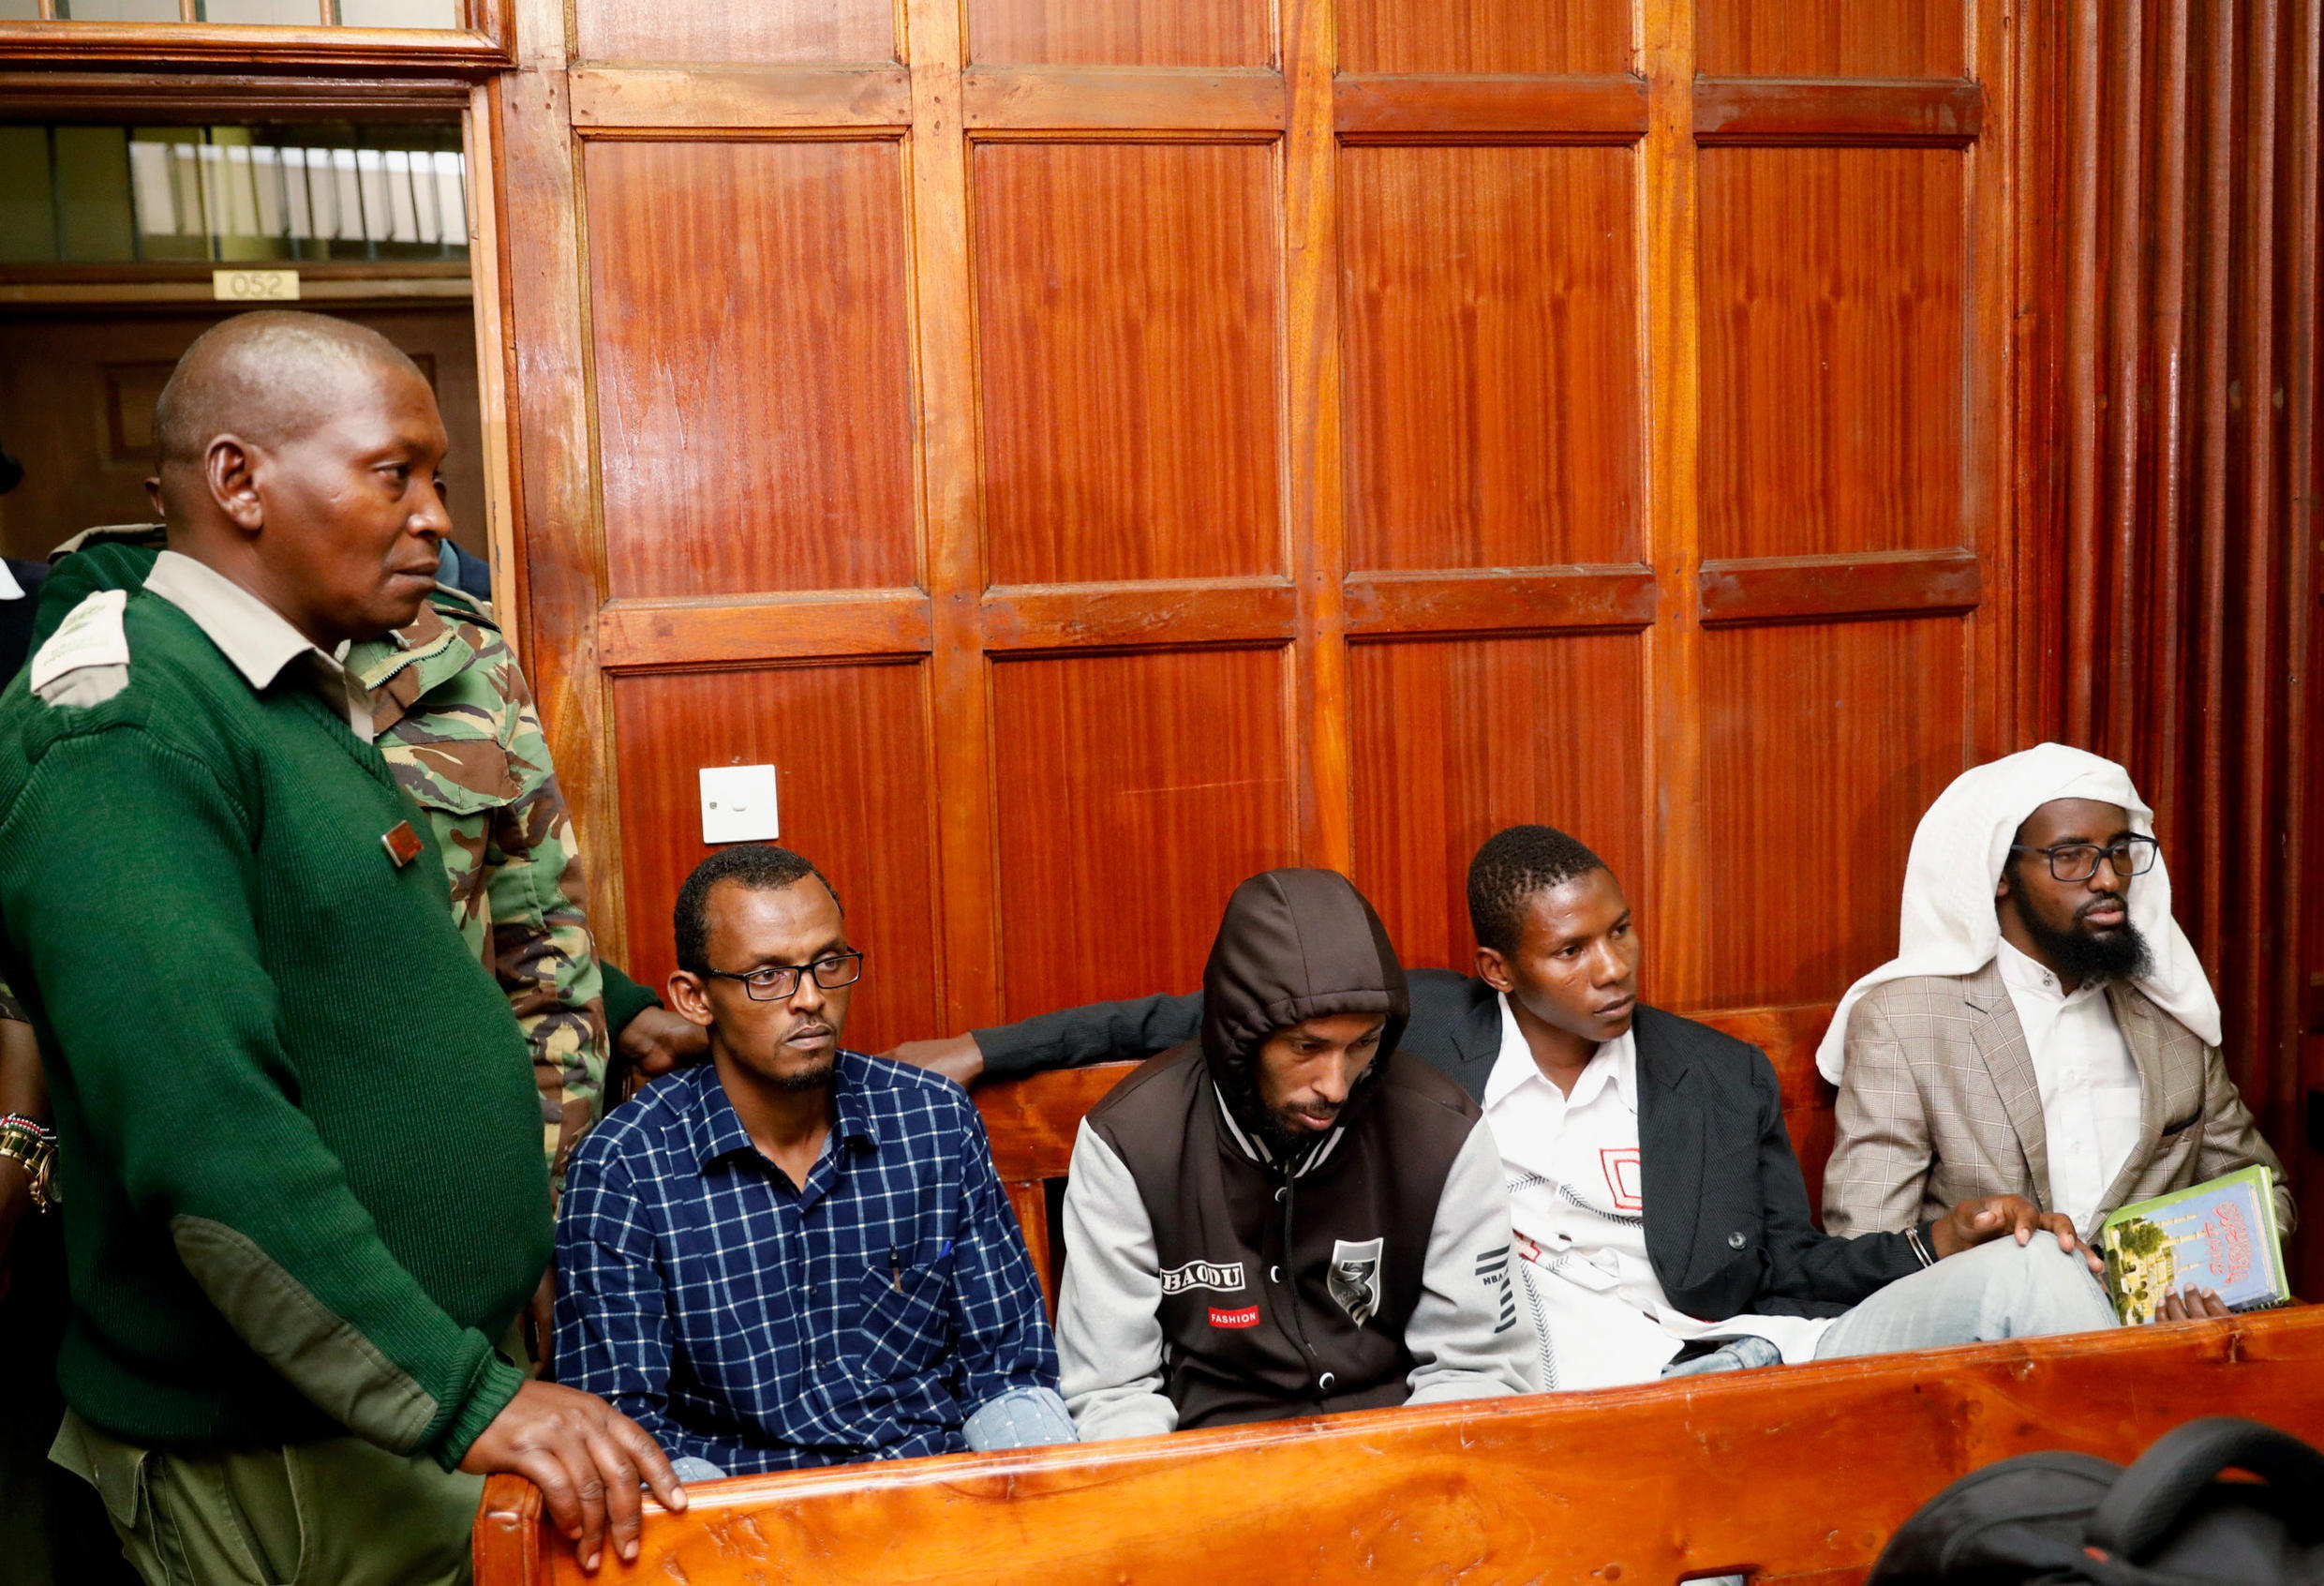 Suspects Hassan Aden Hassan, Mohamed Ali Abdikar, Rashid Charles Mberesero and Sahal Diriye wait to hear their fate after being charged with helping to kill 148 people in an attack on Garissa University in 2015; Nairobi, Kenya